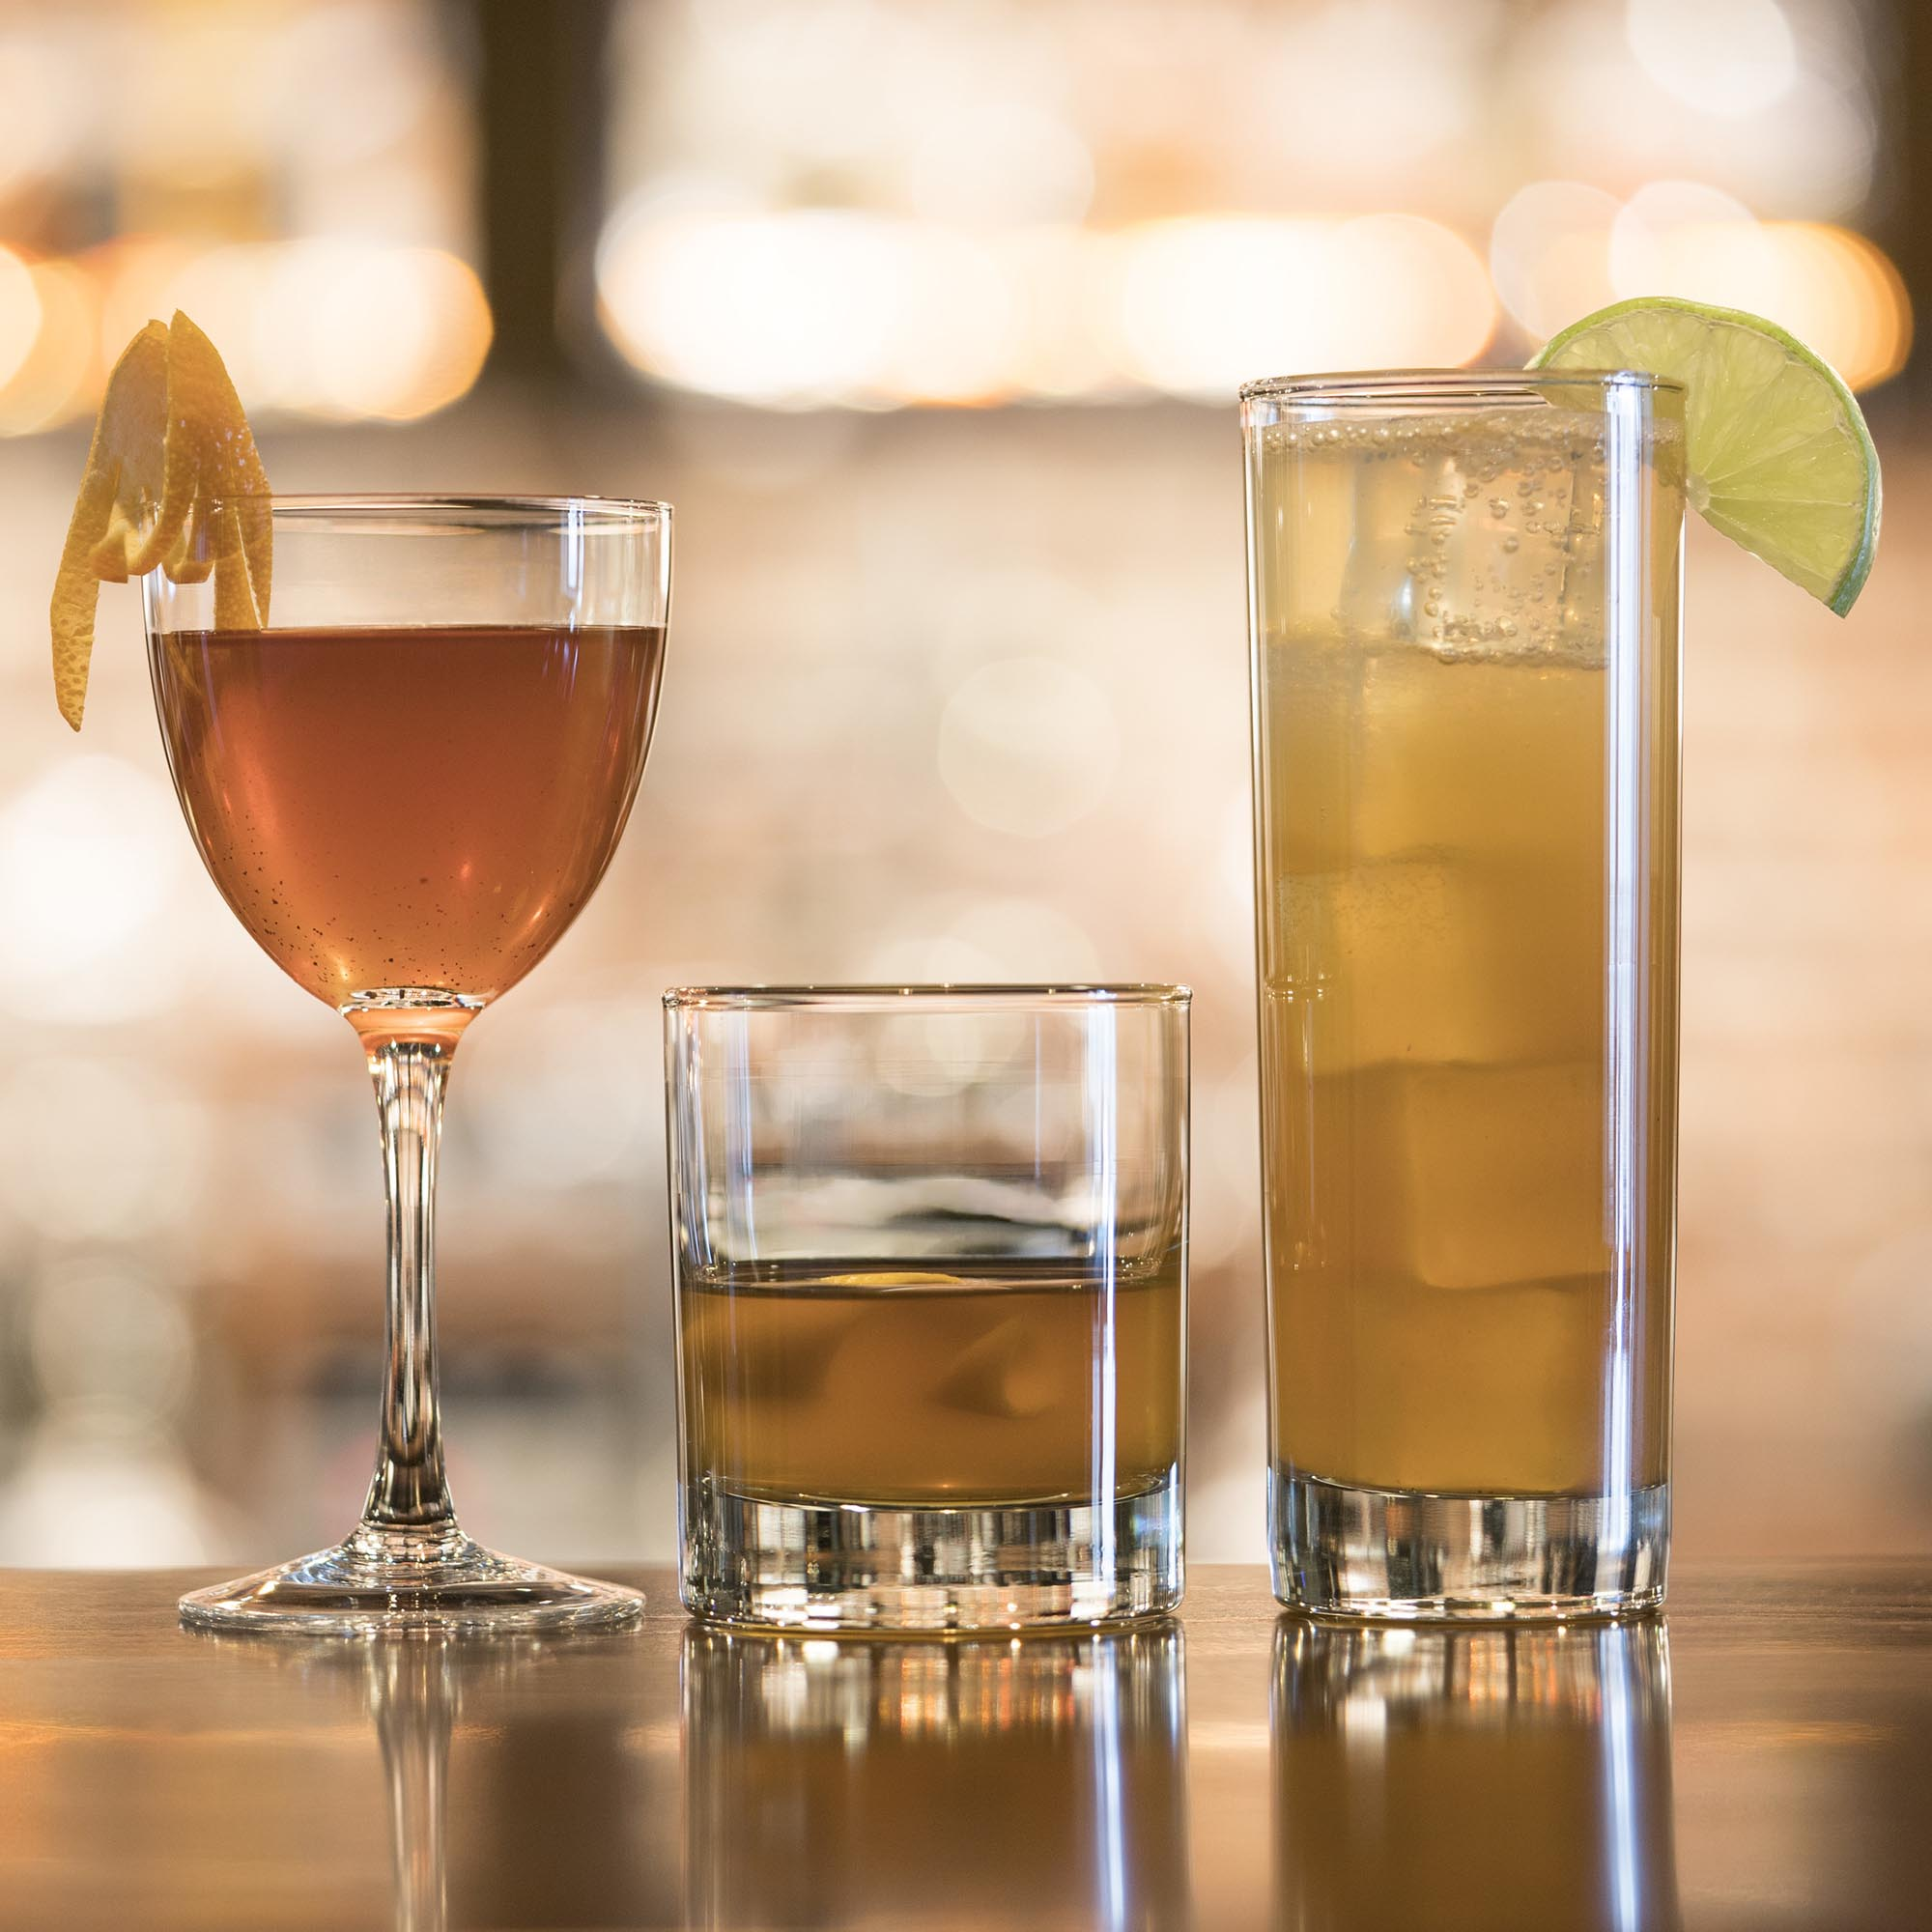 A flight of cocktails at West Main Crafting Co. - Marianne Eaves